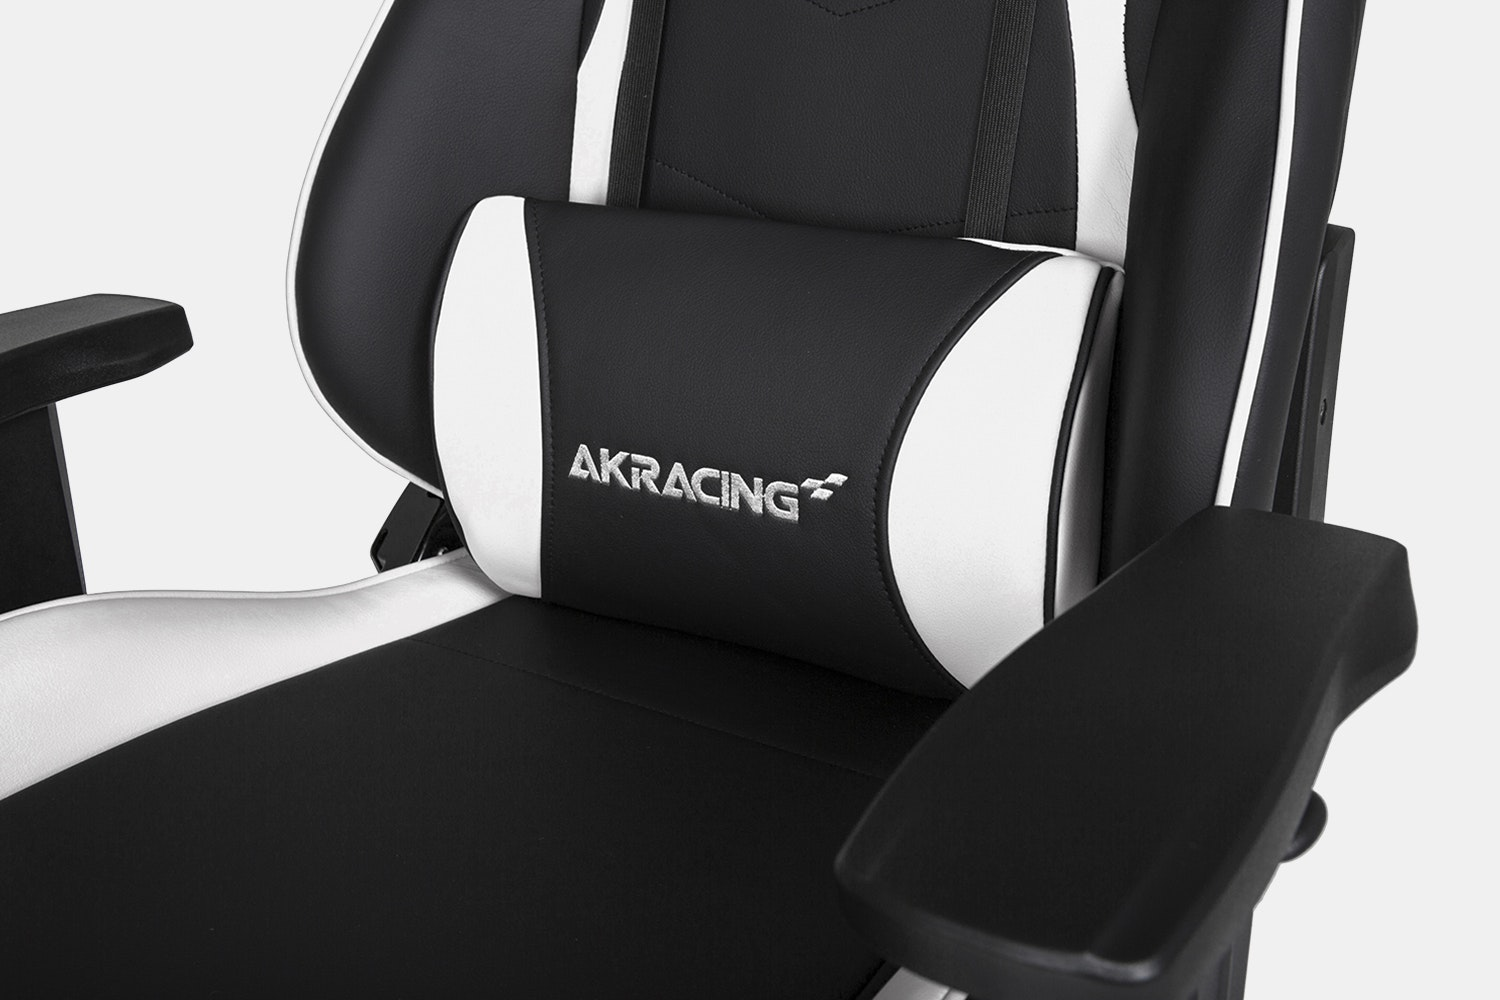 AKRacing Octane & Nitro Series Gaming Chairs